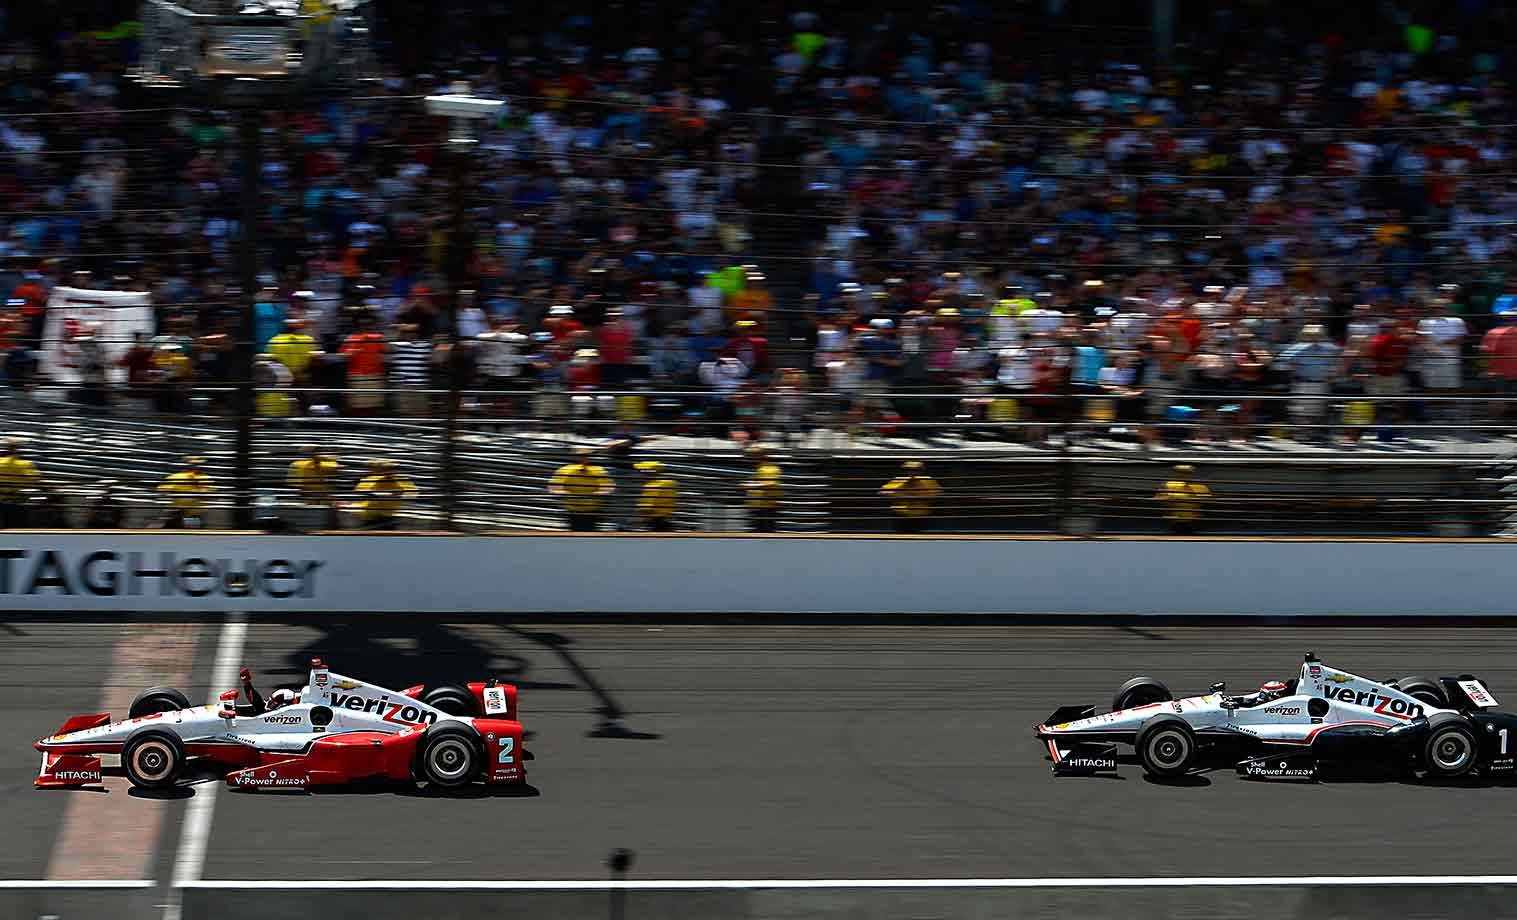 After qualifying for the 99th running of the Indy 500 in 15th place and dropping to 30th after sustaining contact damage early, the Team Penske ace rushed back to the front, seized the lead with four laps to go on the way to winning his second Borg Warner trophy. The victory, which came 15 years after Montoya, 39, conquered the Brickyard on his first try, provided the exclamation point on the Colombian's return to open-wheel racing (which he deserted for nine years to go walkabout in NASCAR) and furnished him with a seemingly insurmountable lead in the IndyCar points standing.